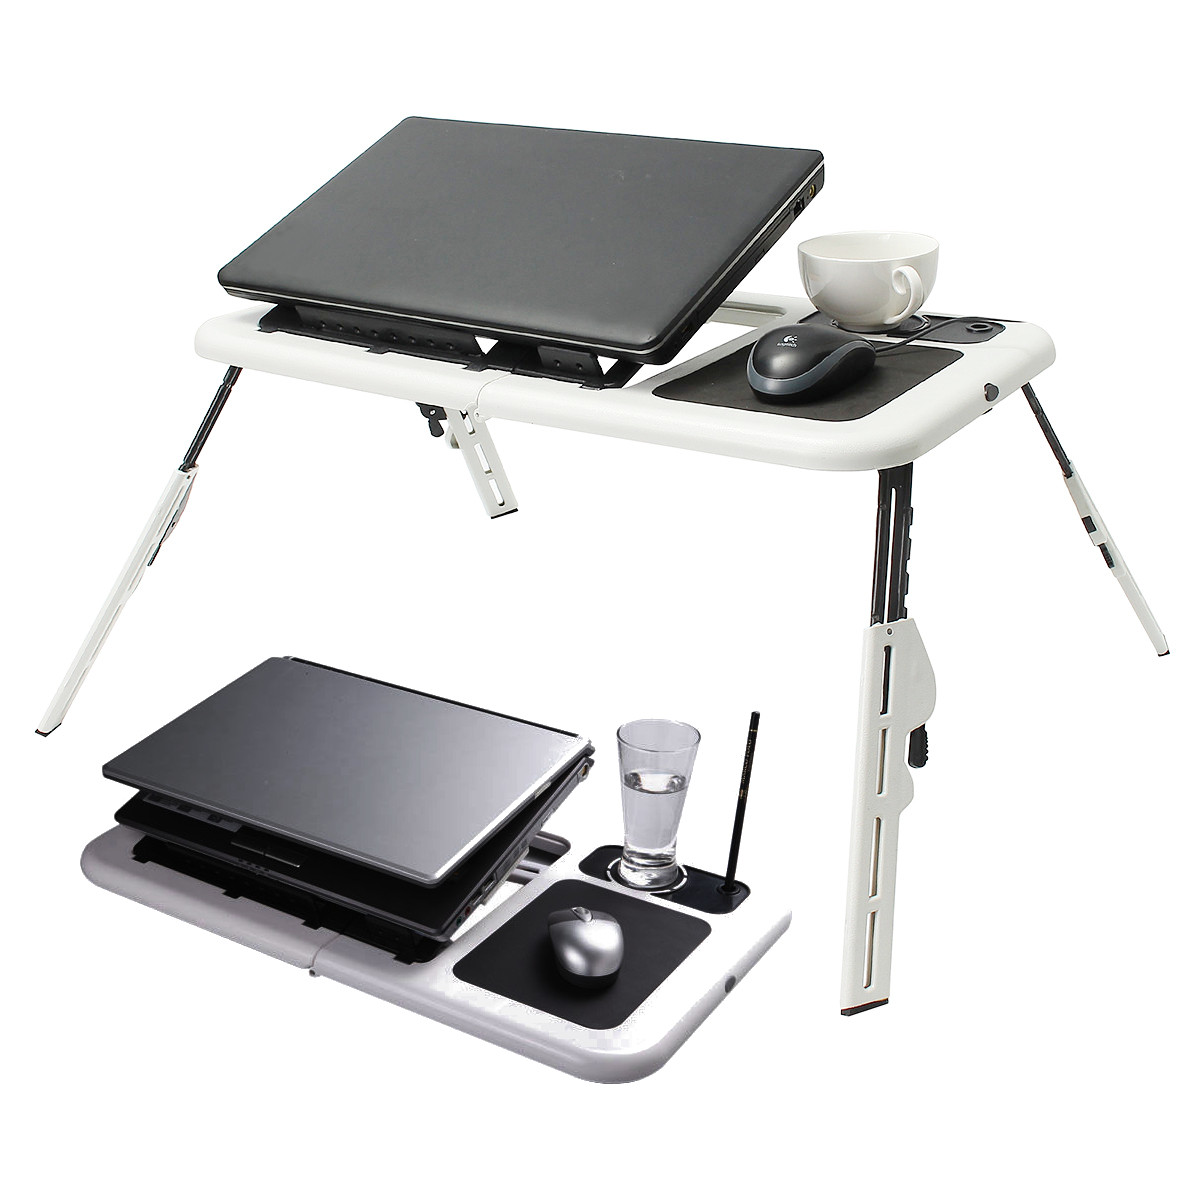 Folding Laptop Notebook laptoptray Table Stand Tray Desk With USB Cooling Fans For Sofa Bed Carpet Lawn